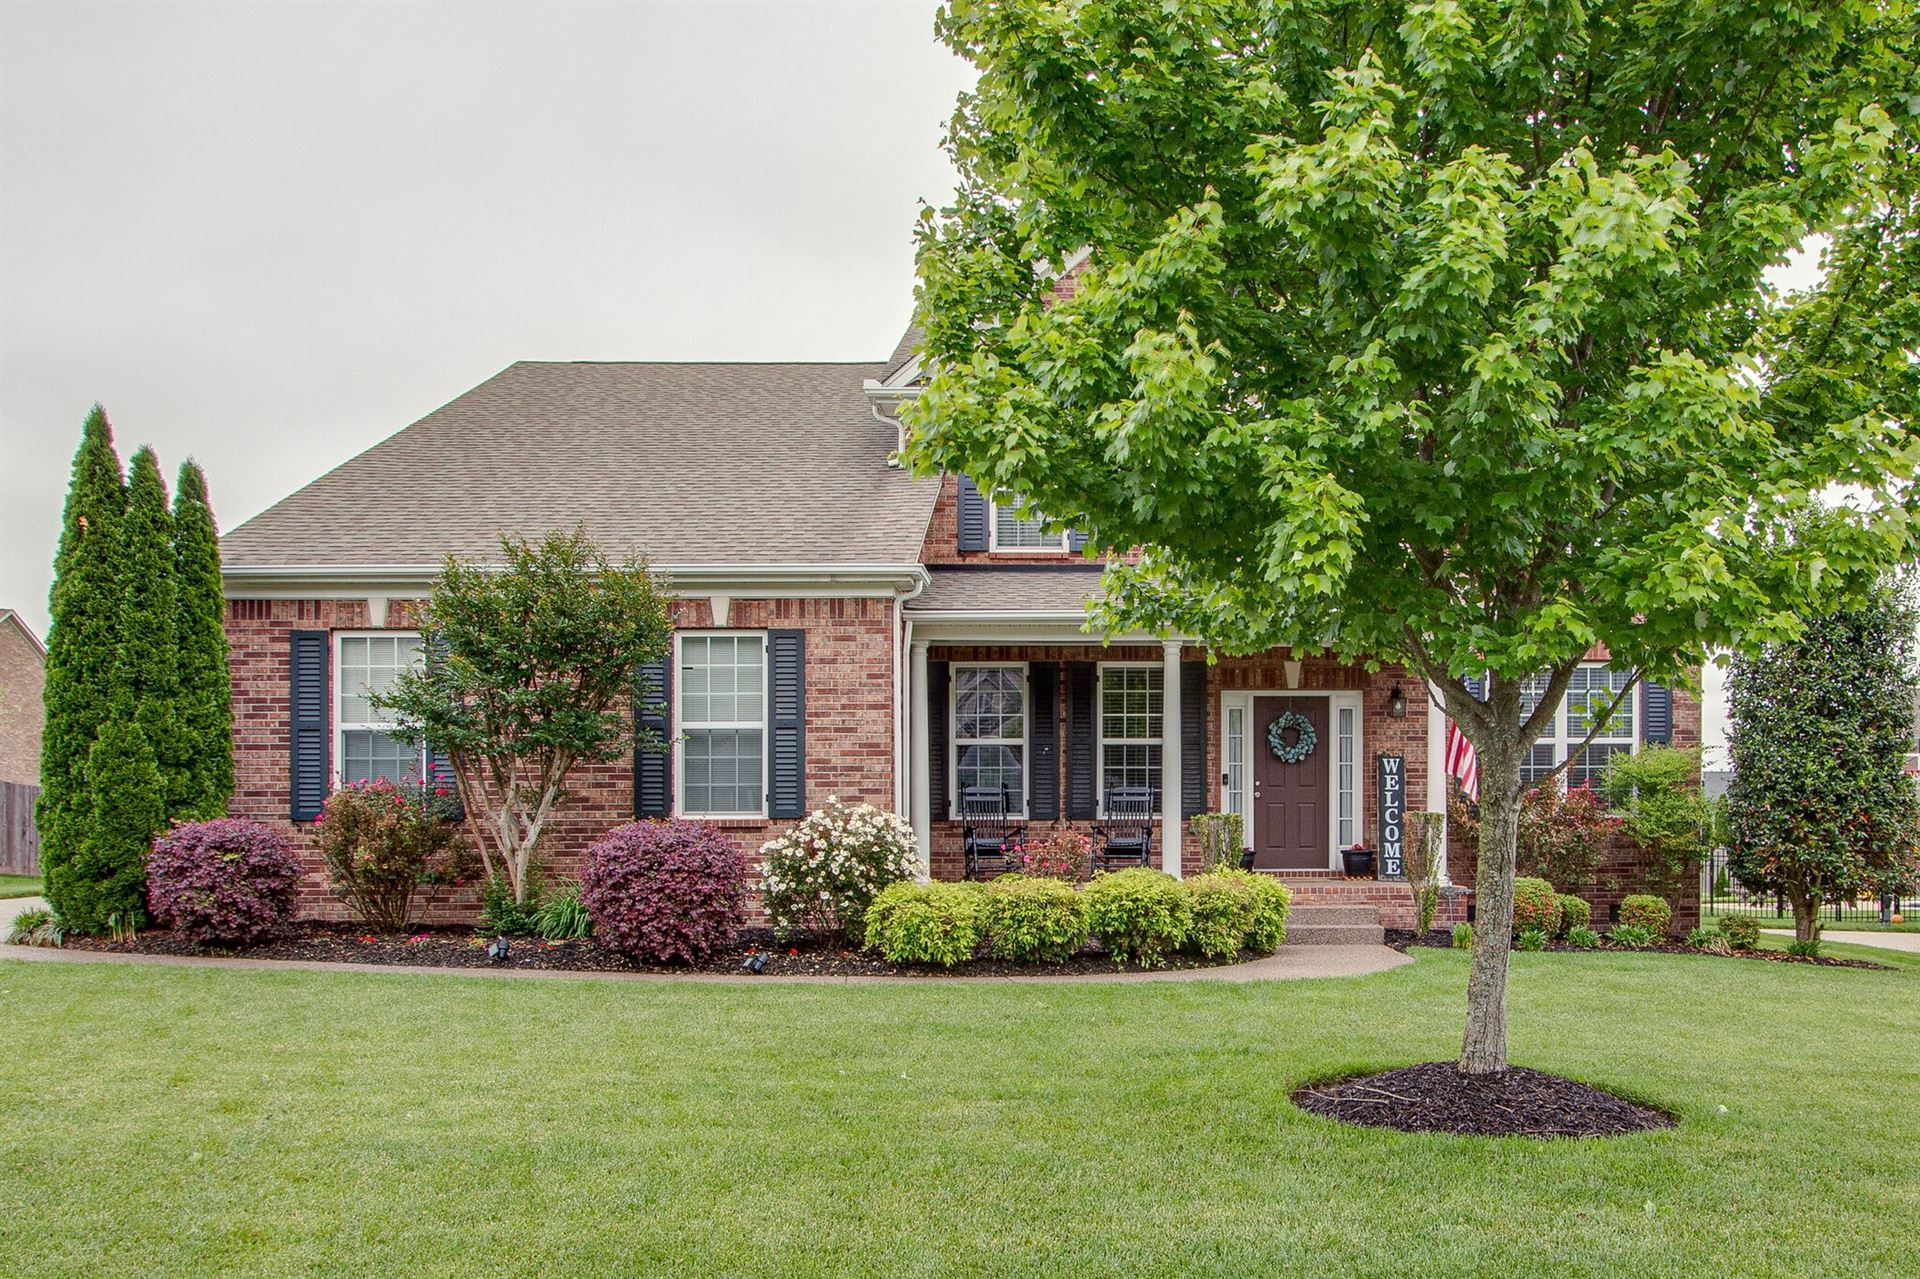 Photo of 3030 Everleigh Pl, Spring Hill, TN 37174 (MLS # 2252489)